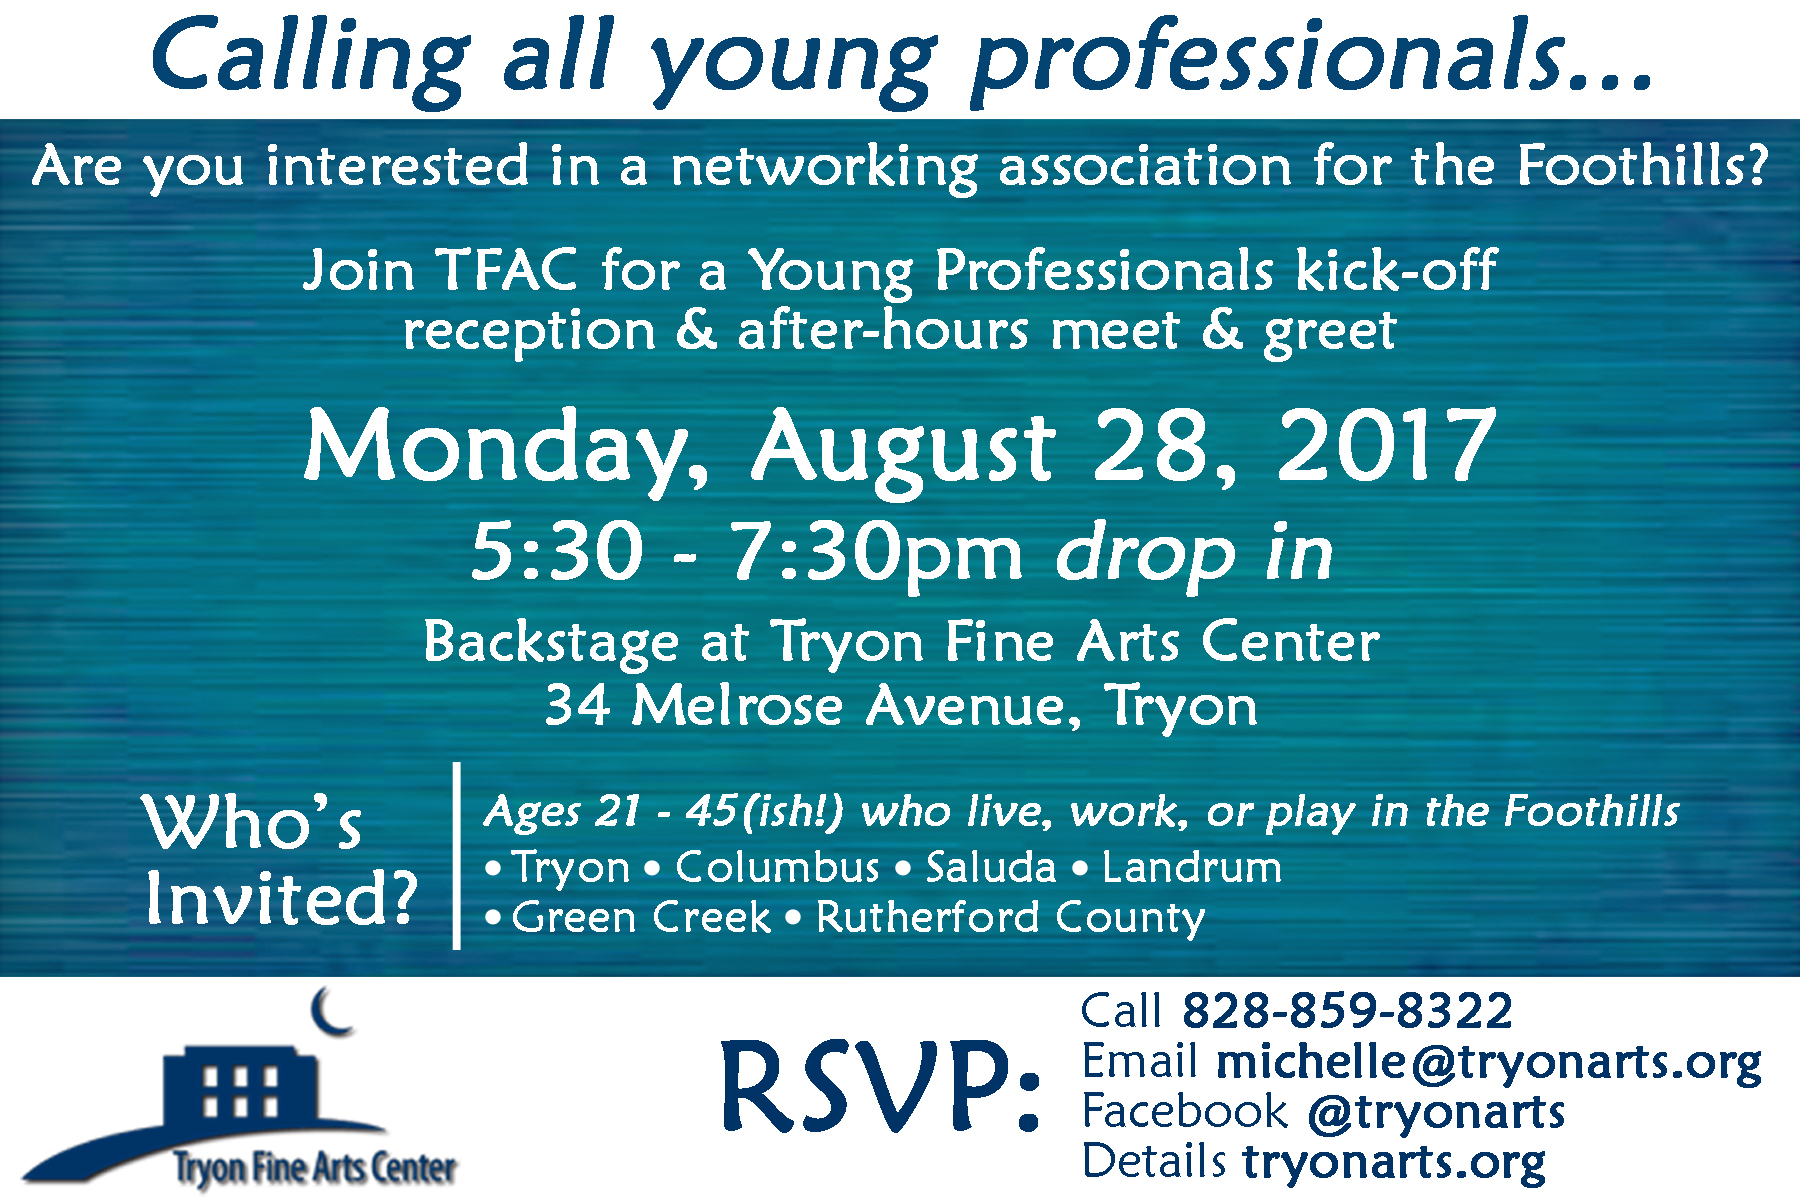 Young Professionals Tryon Fine Arts Center